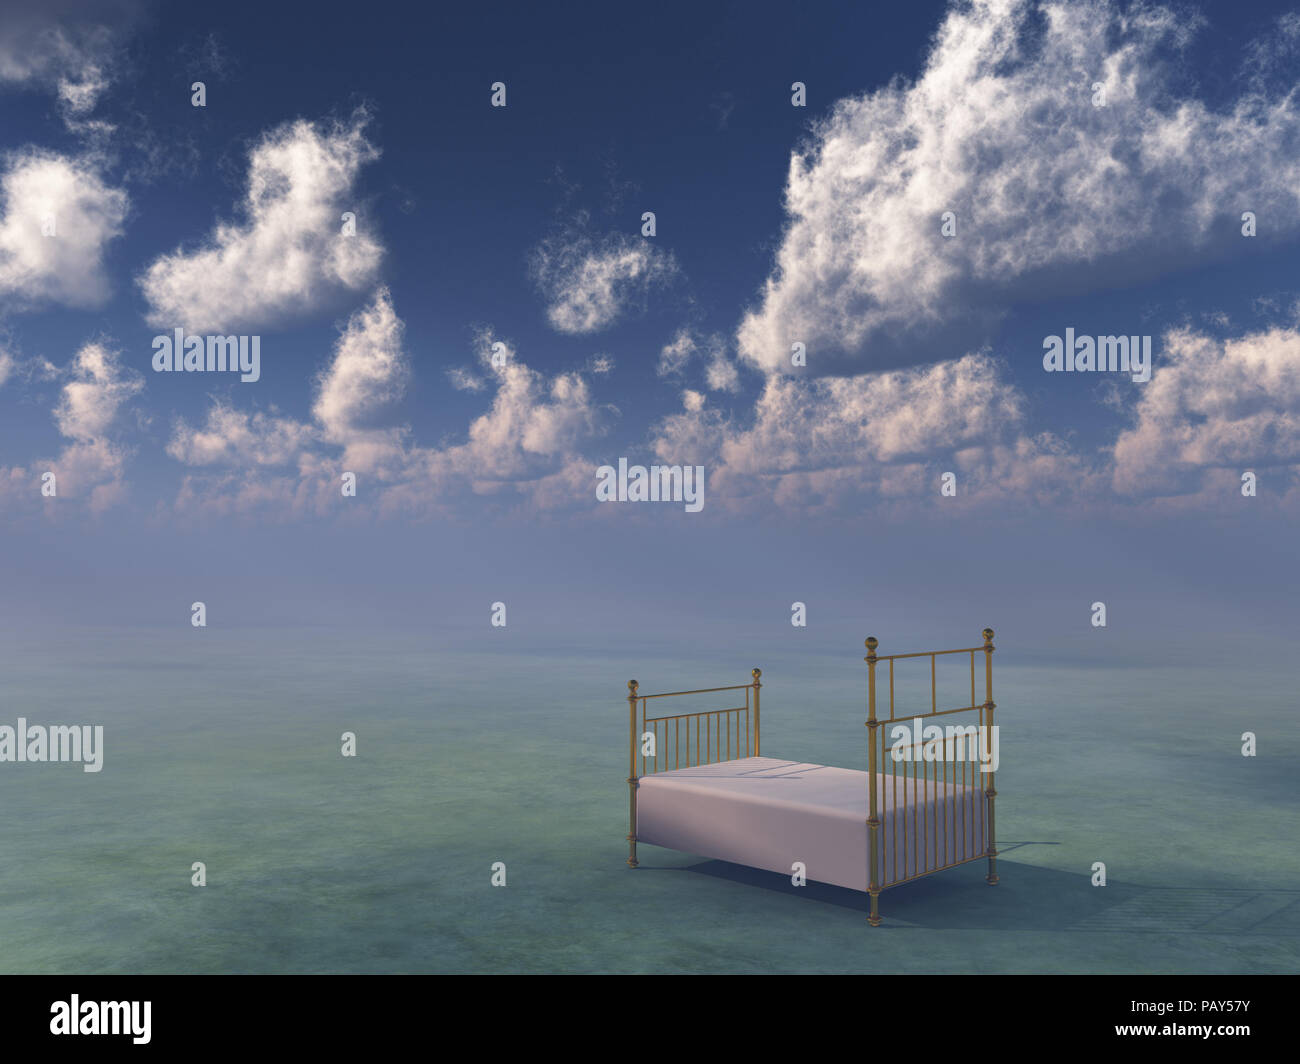 Bed in surreal space. - Stock Image